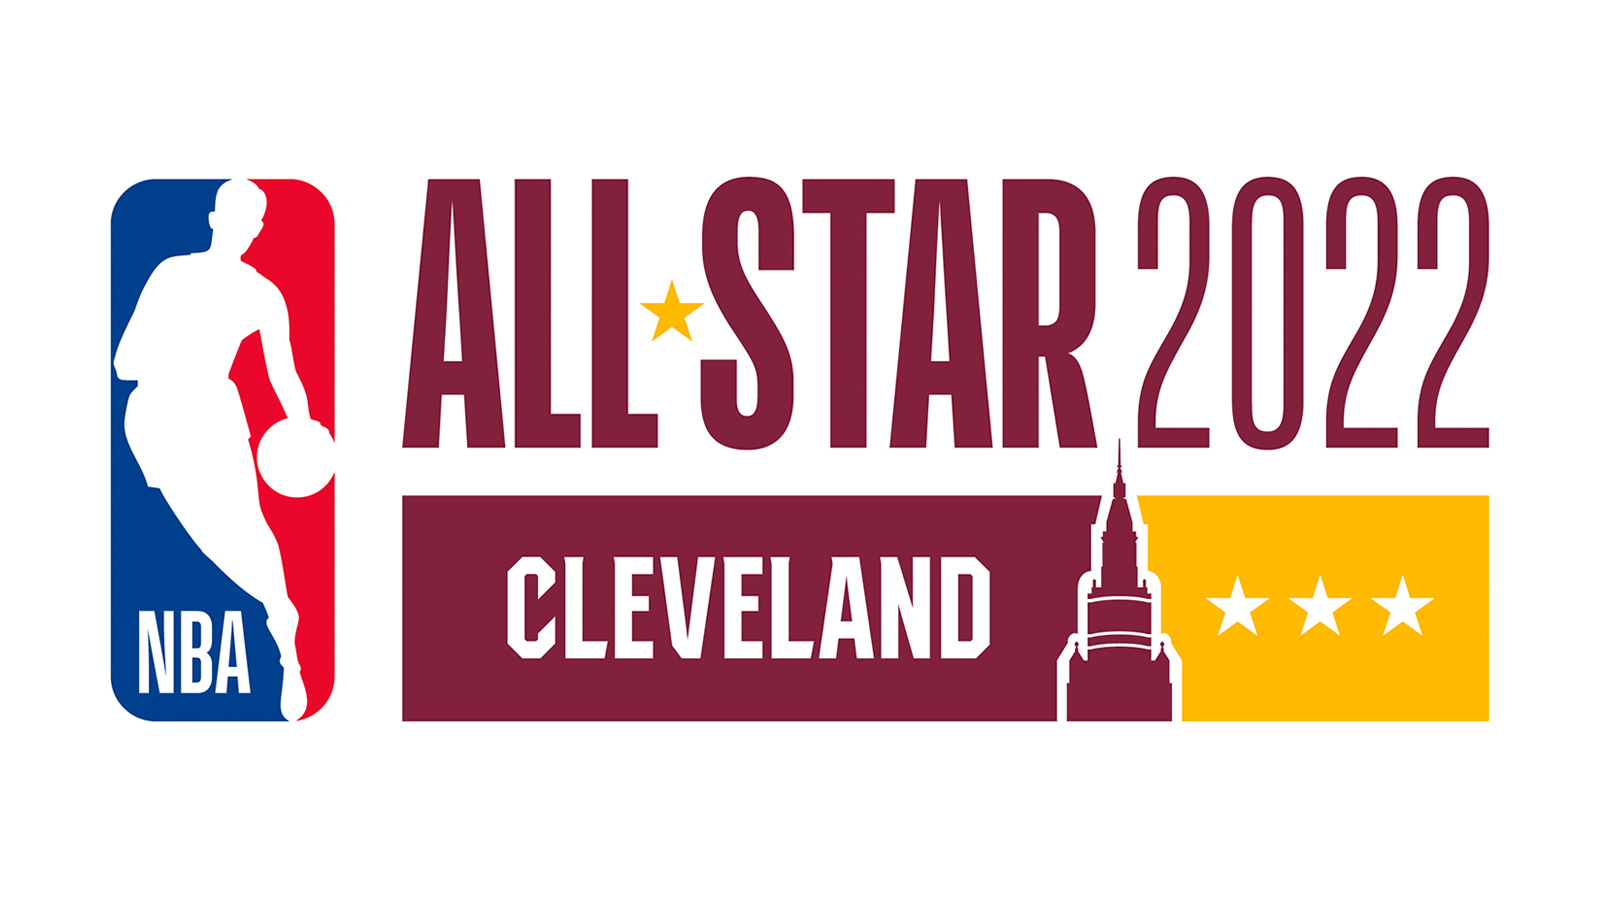 NBA unveils logos for NBA All-Star 2022 in Cleveland